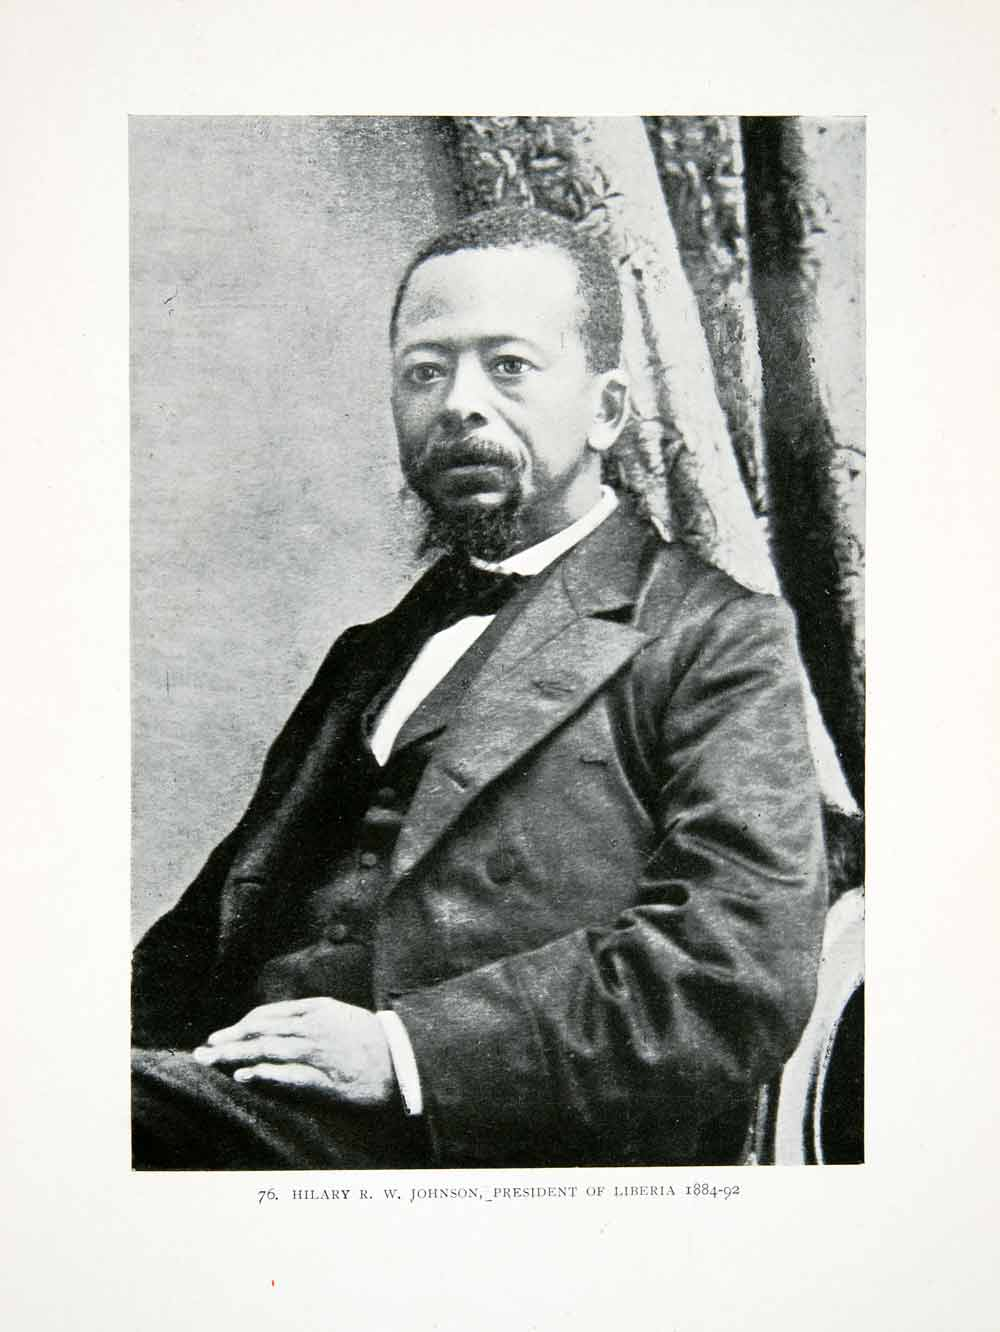 Details about  1906 Print Liberia Africa President Hilary R. W. Johnson Portrait Governmental